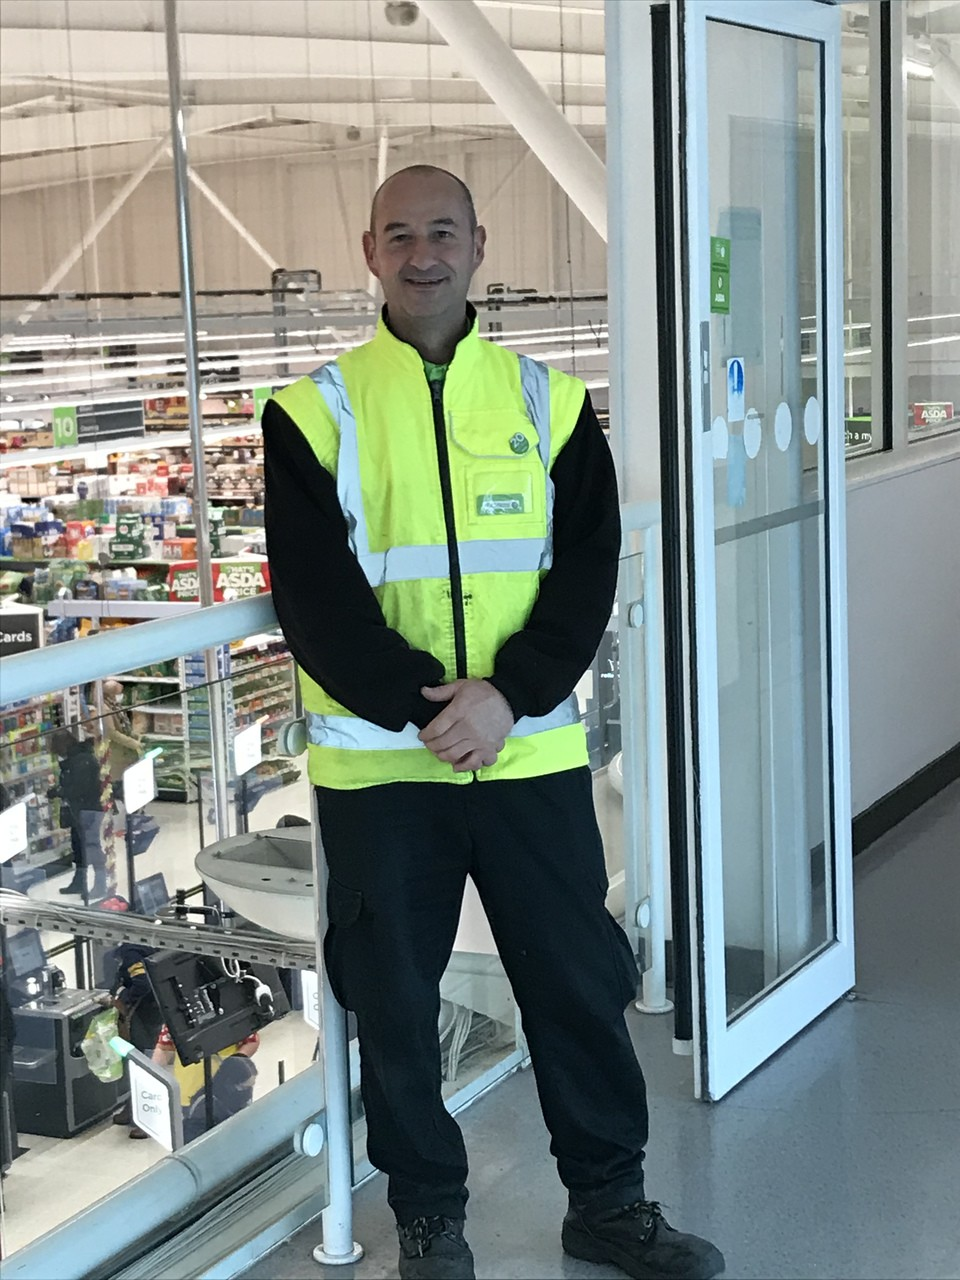 20 years' service for Nektarios | Asda Cardiff Bay